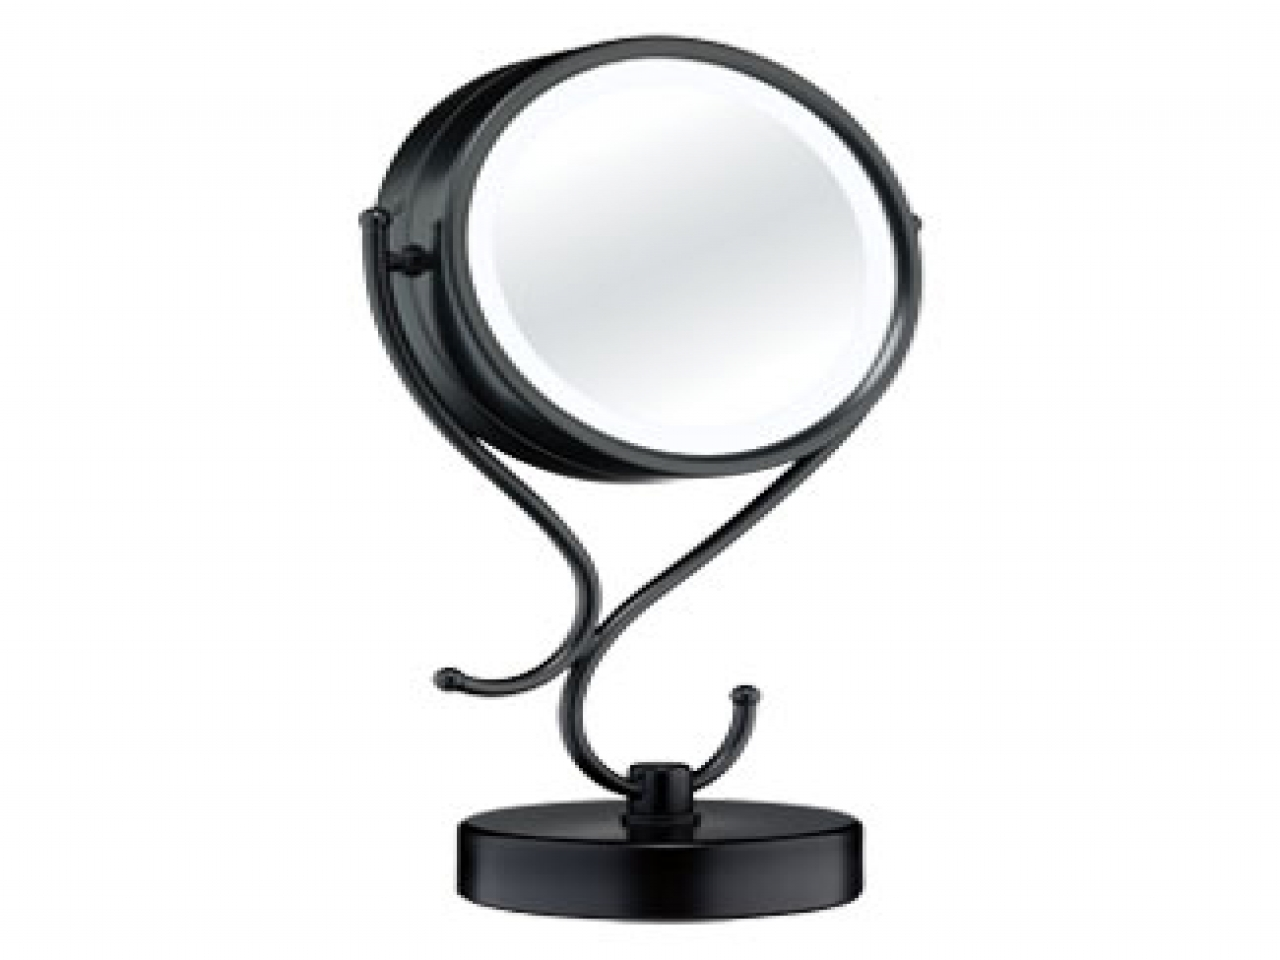 Conair Lighted Makeup Mirror | Conair Replacement Bulbs | Makeup Mirror with Lights Walmart